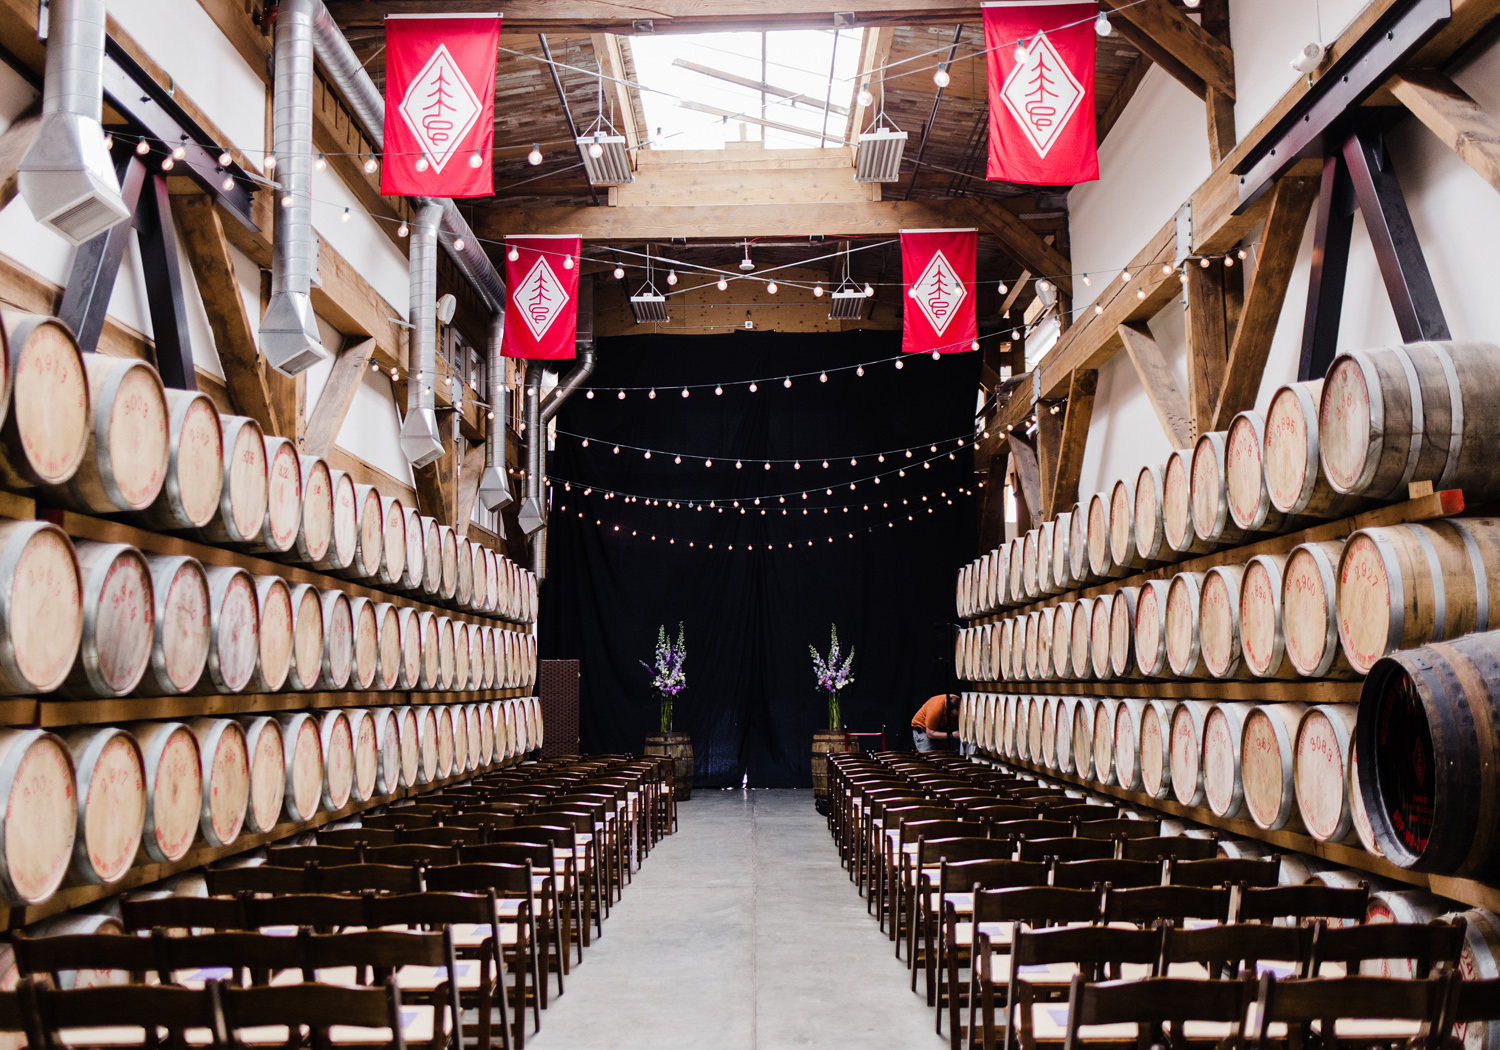 Westland Distillery Indoor Ceremony Venue Space In the Barrel Room by Alexandra Knight Photography Seattle Wedding Photographer